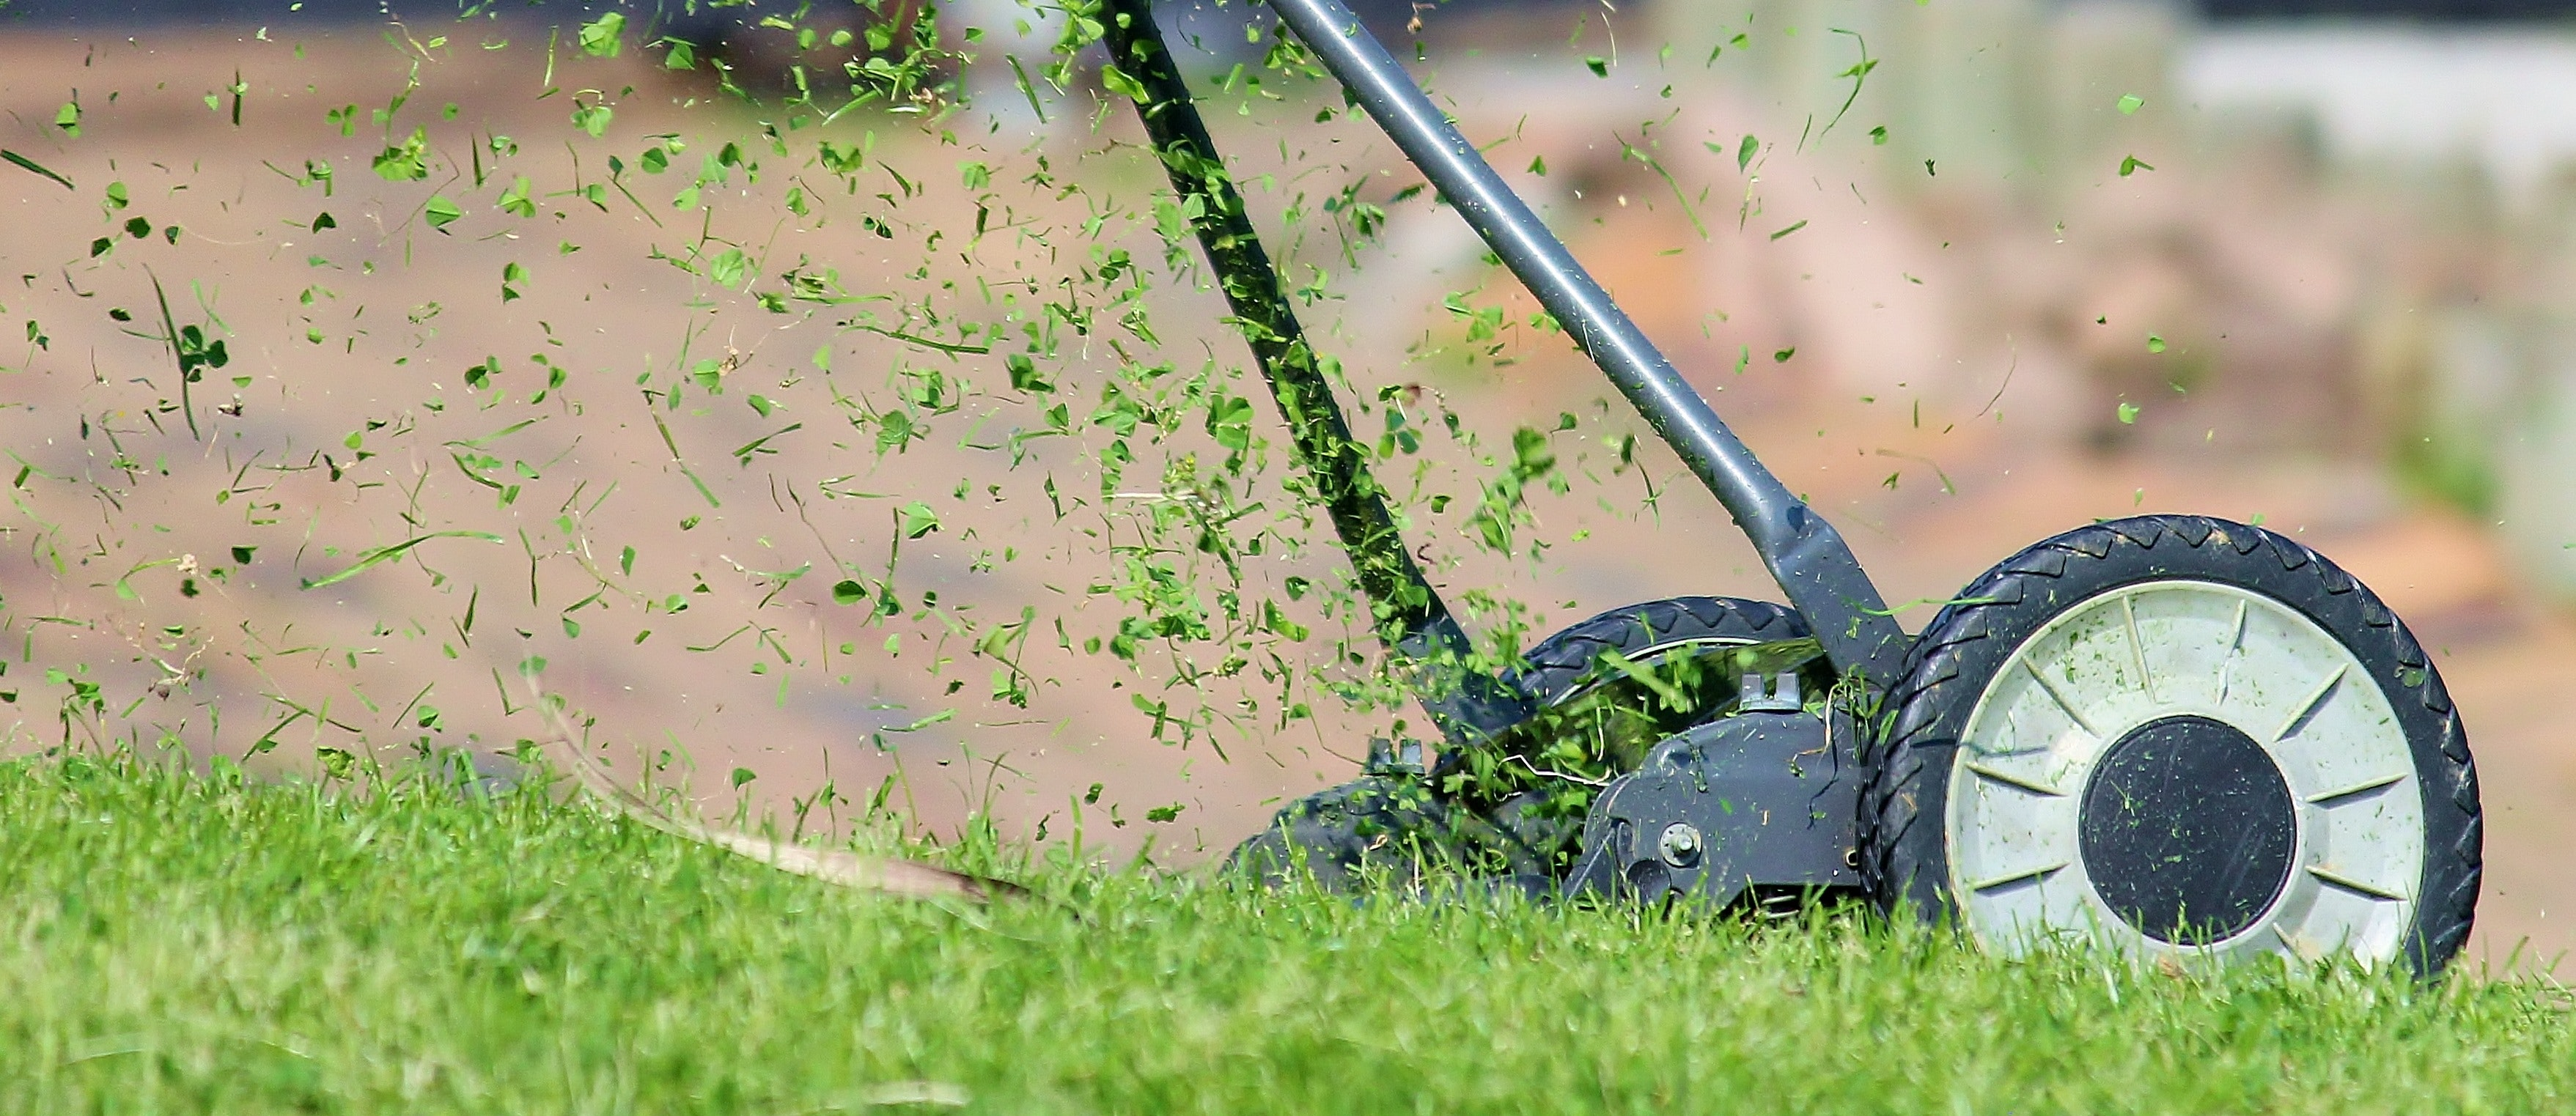 Best Lawn Mower Blades for Thick Grass